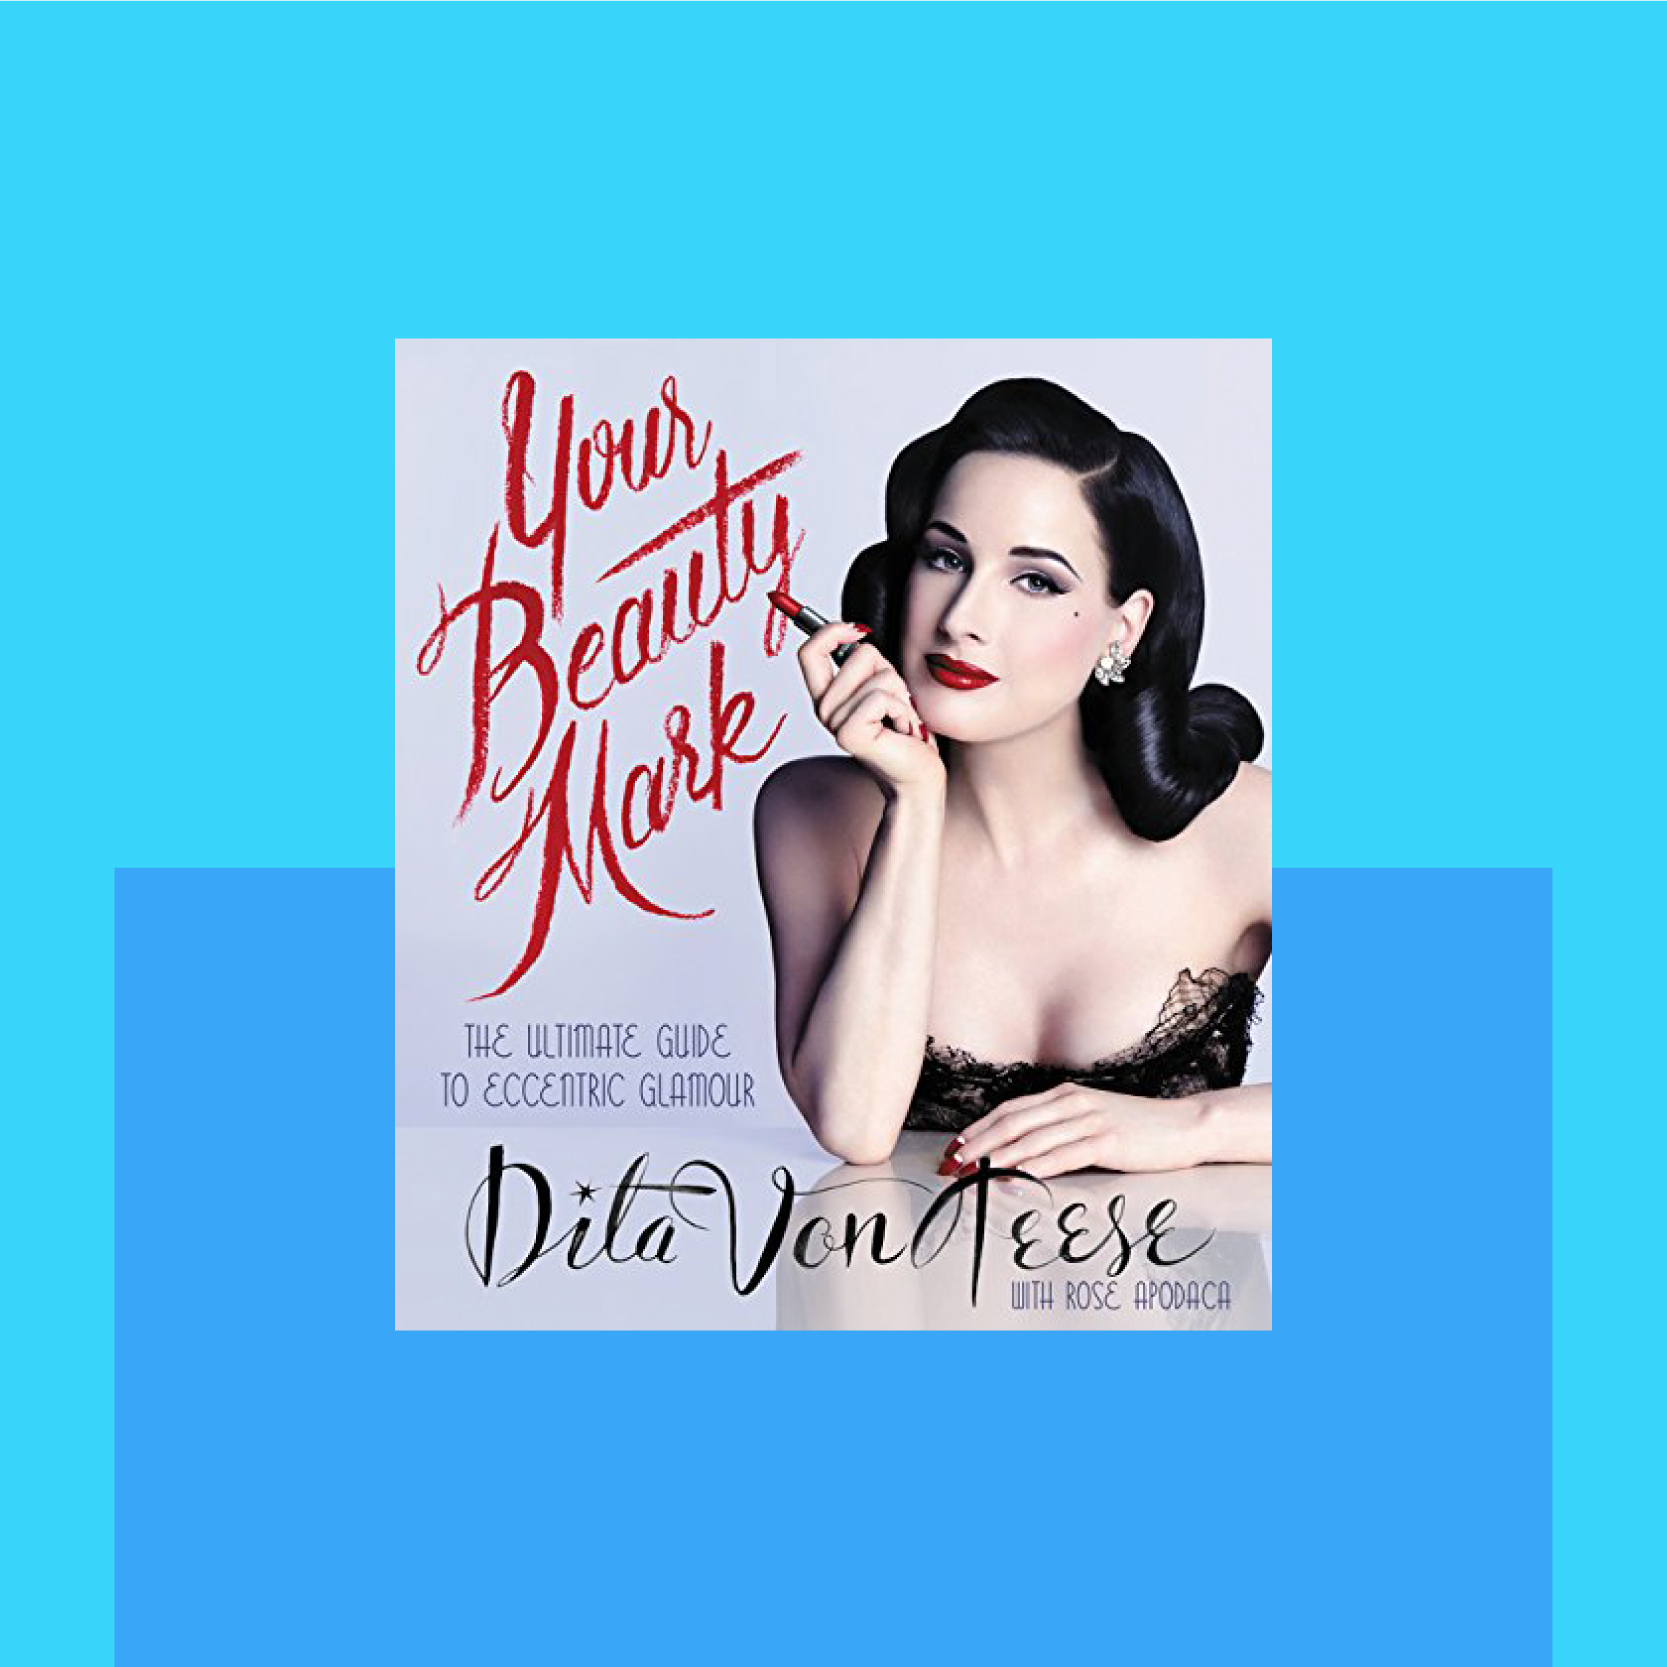 Your-Beauty-Mark-Dita-Von-Teese.jpg